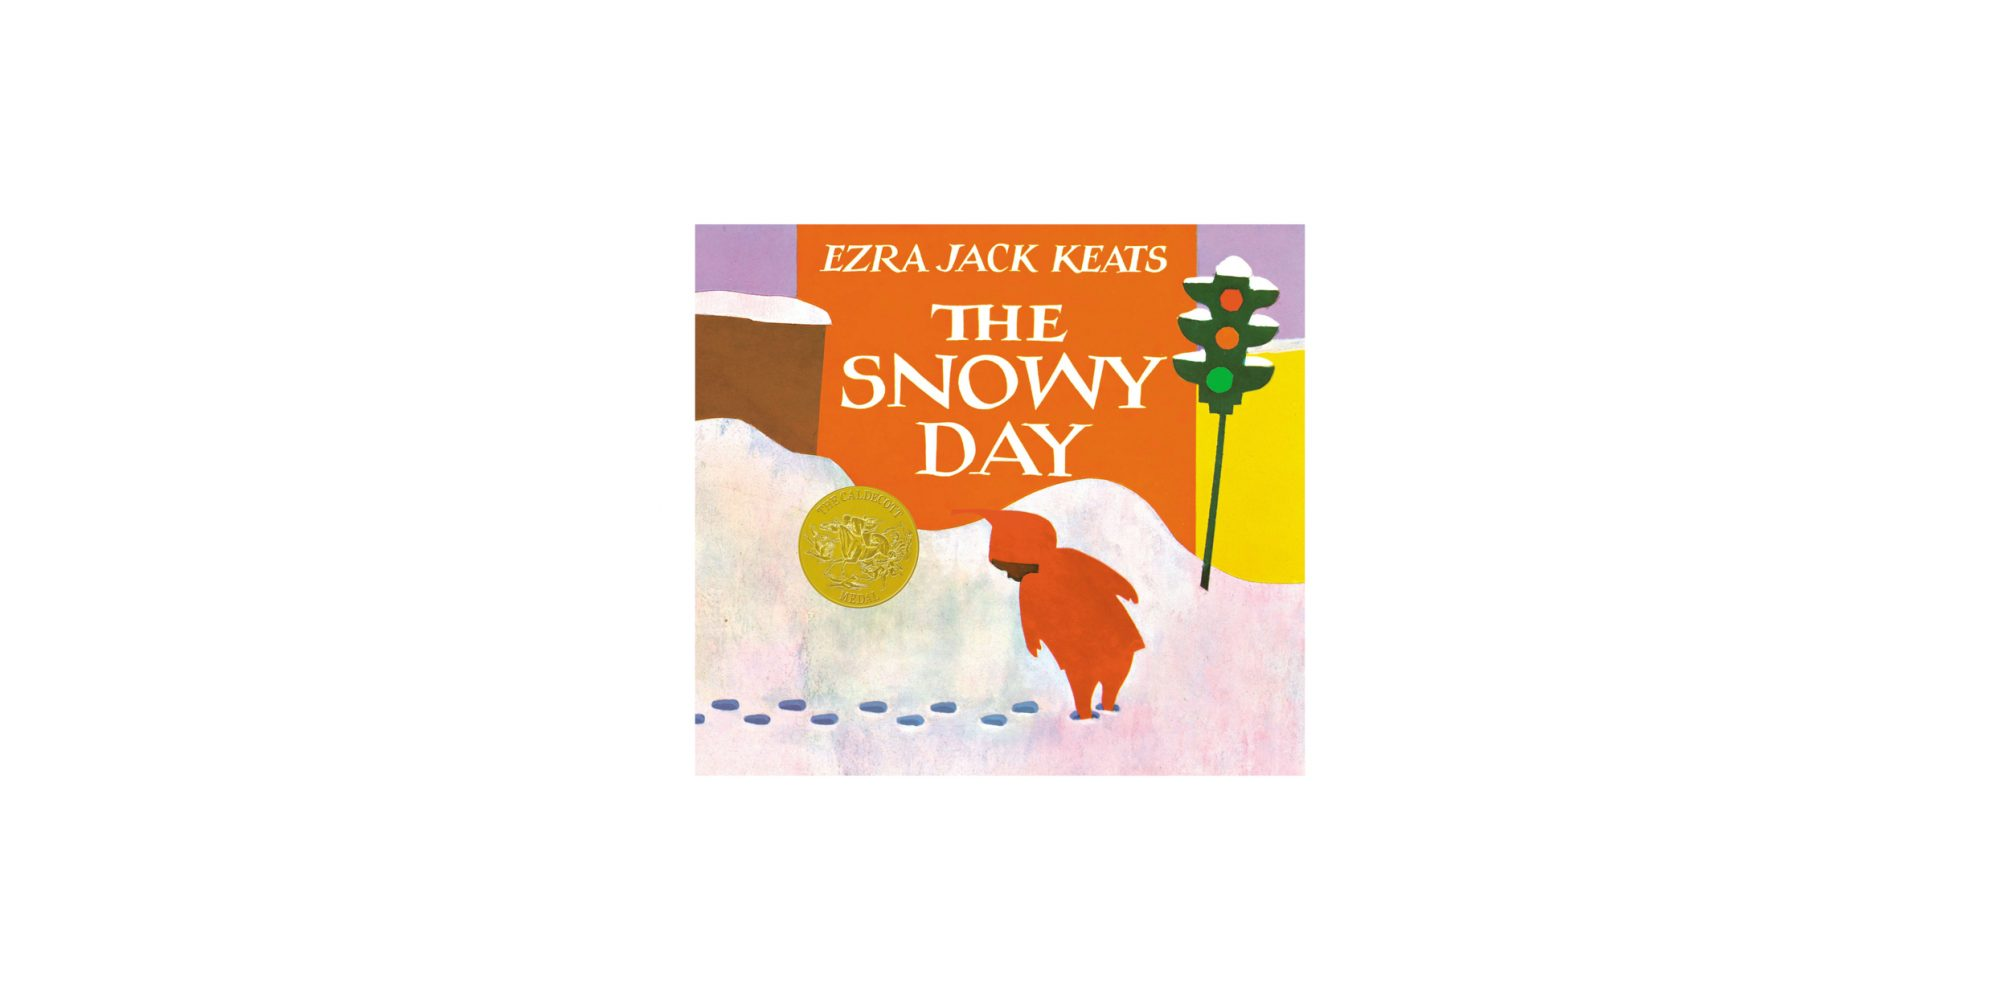 The Snow Day book cover